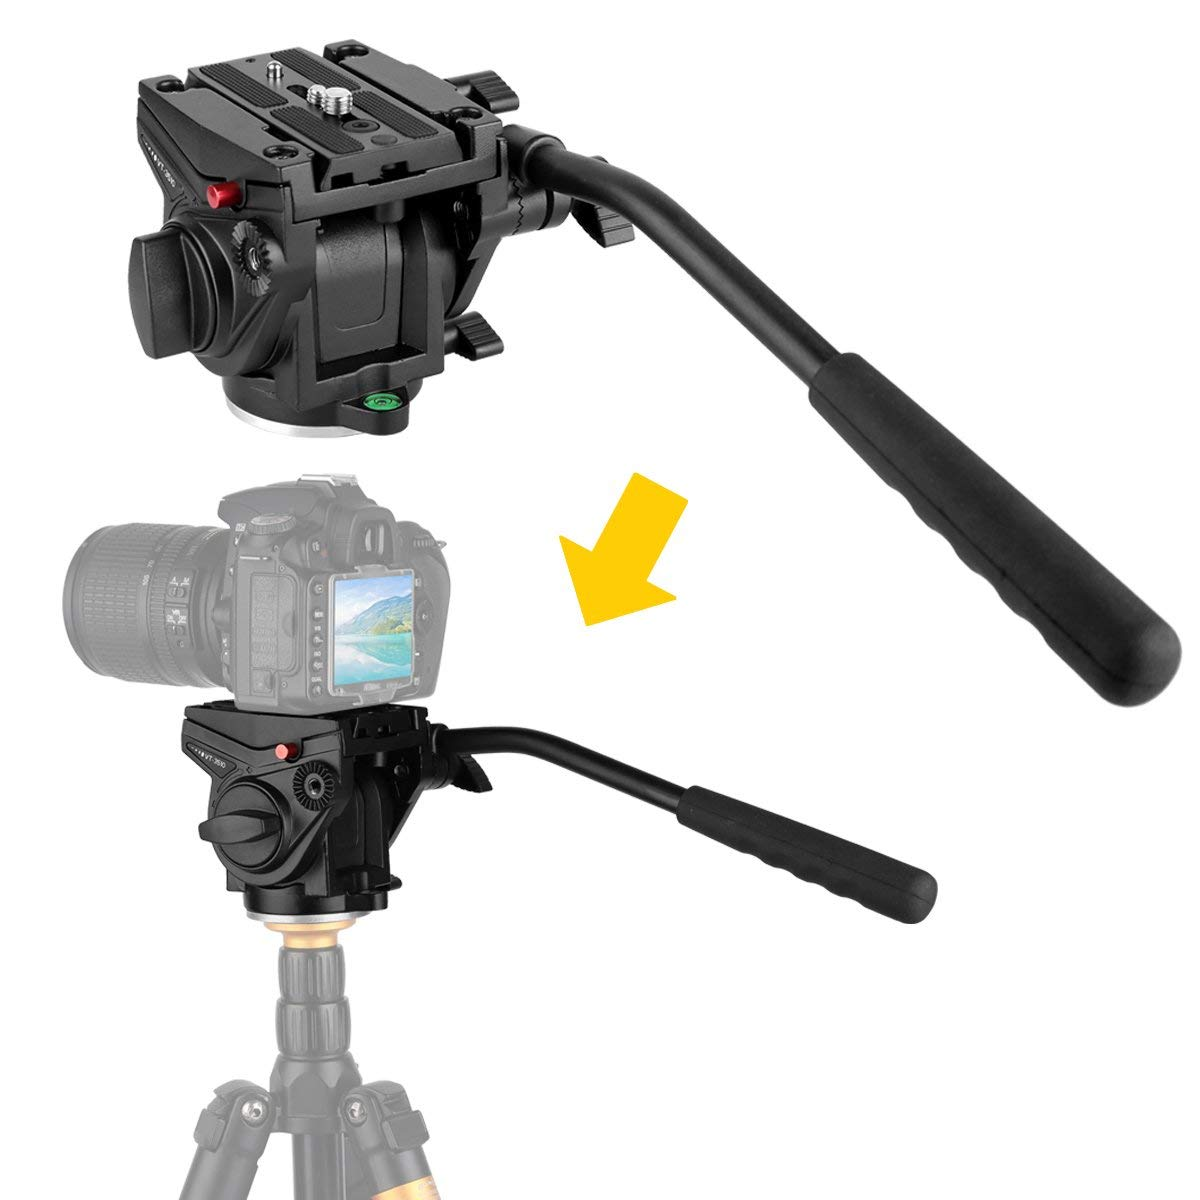 KINGJOY Heavy Duty Video Camera Fluid Drag Head, Fluid Drag Pan Tilt Head For DSLR Camera Video Camcorder Shooting Filming